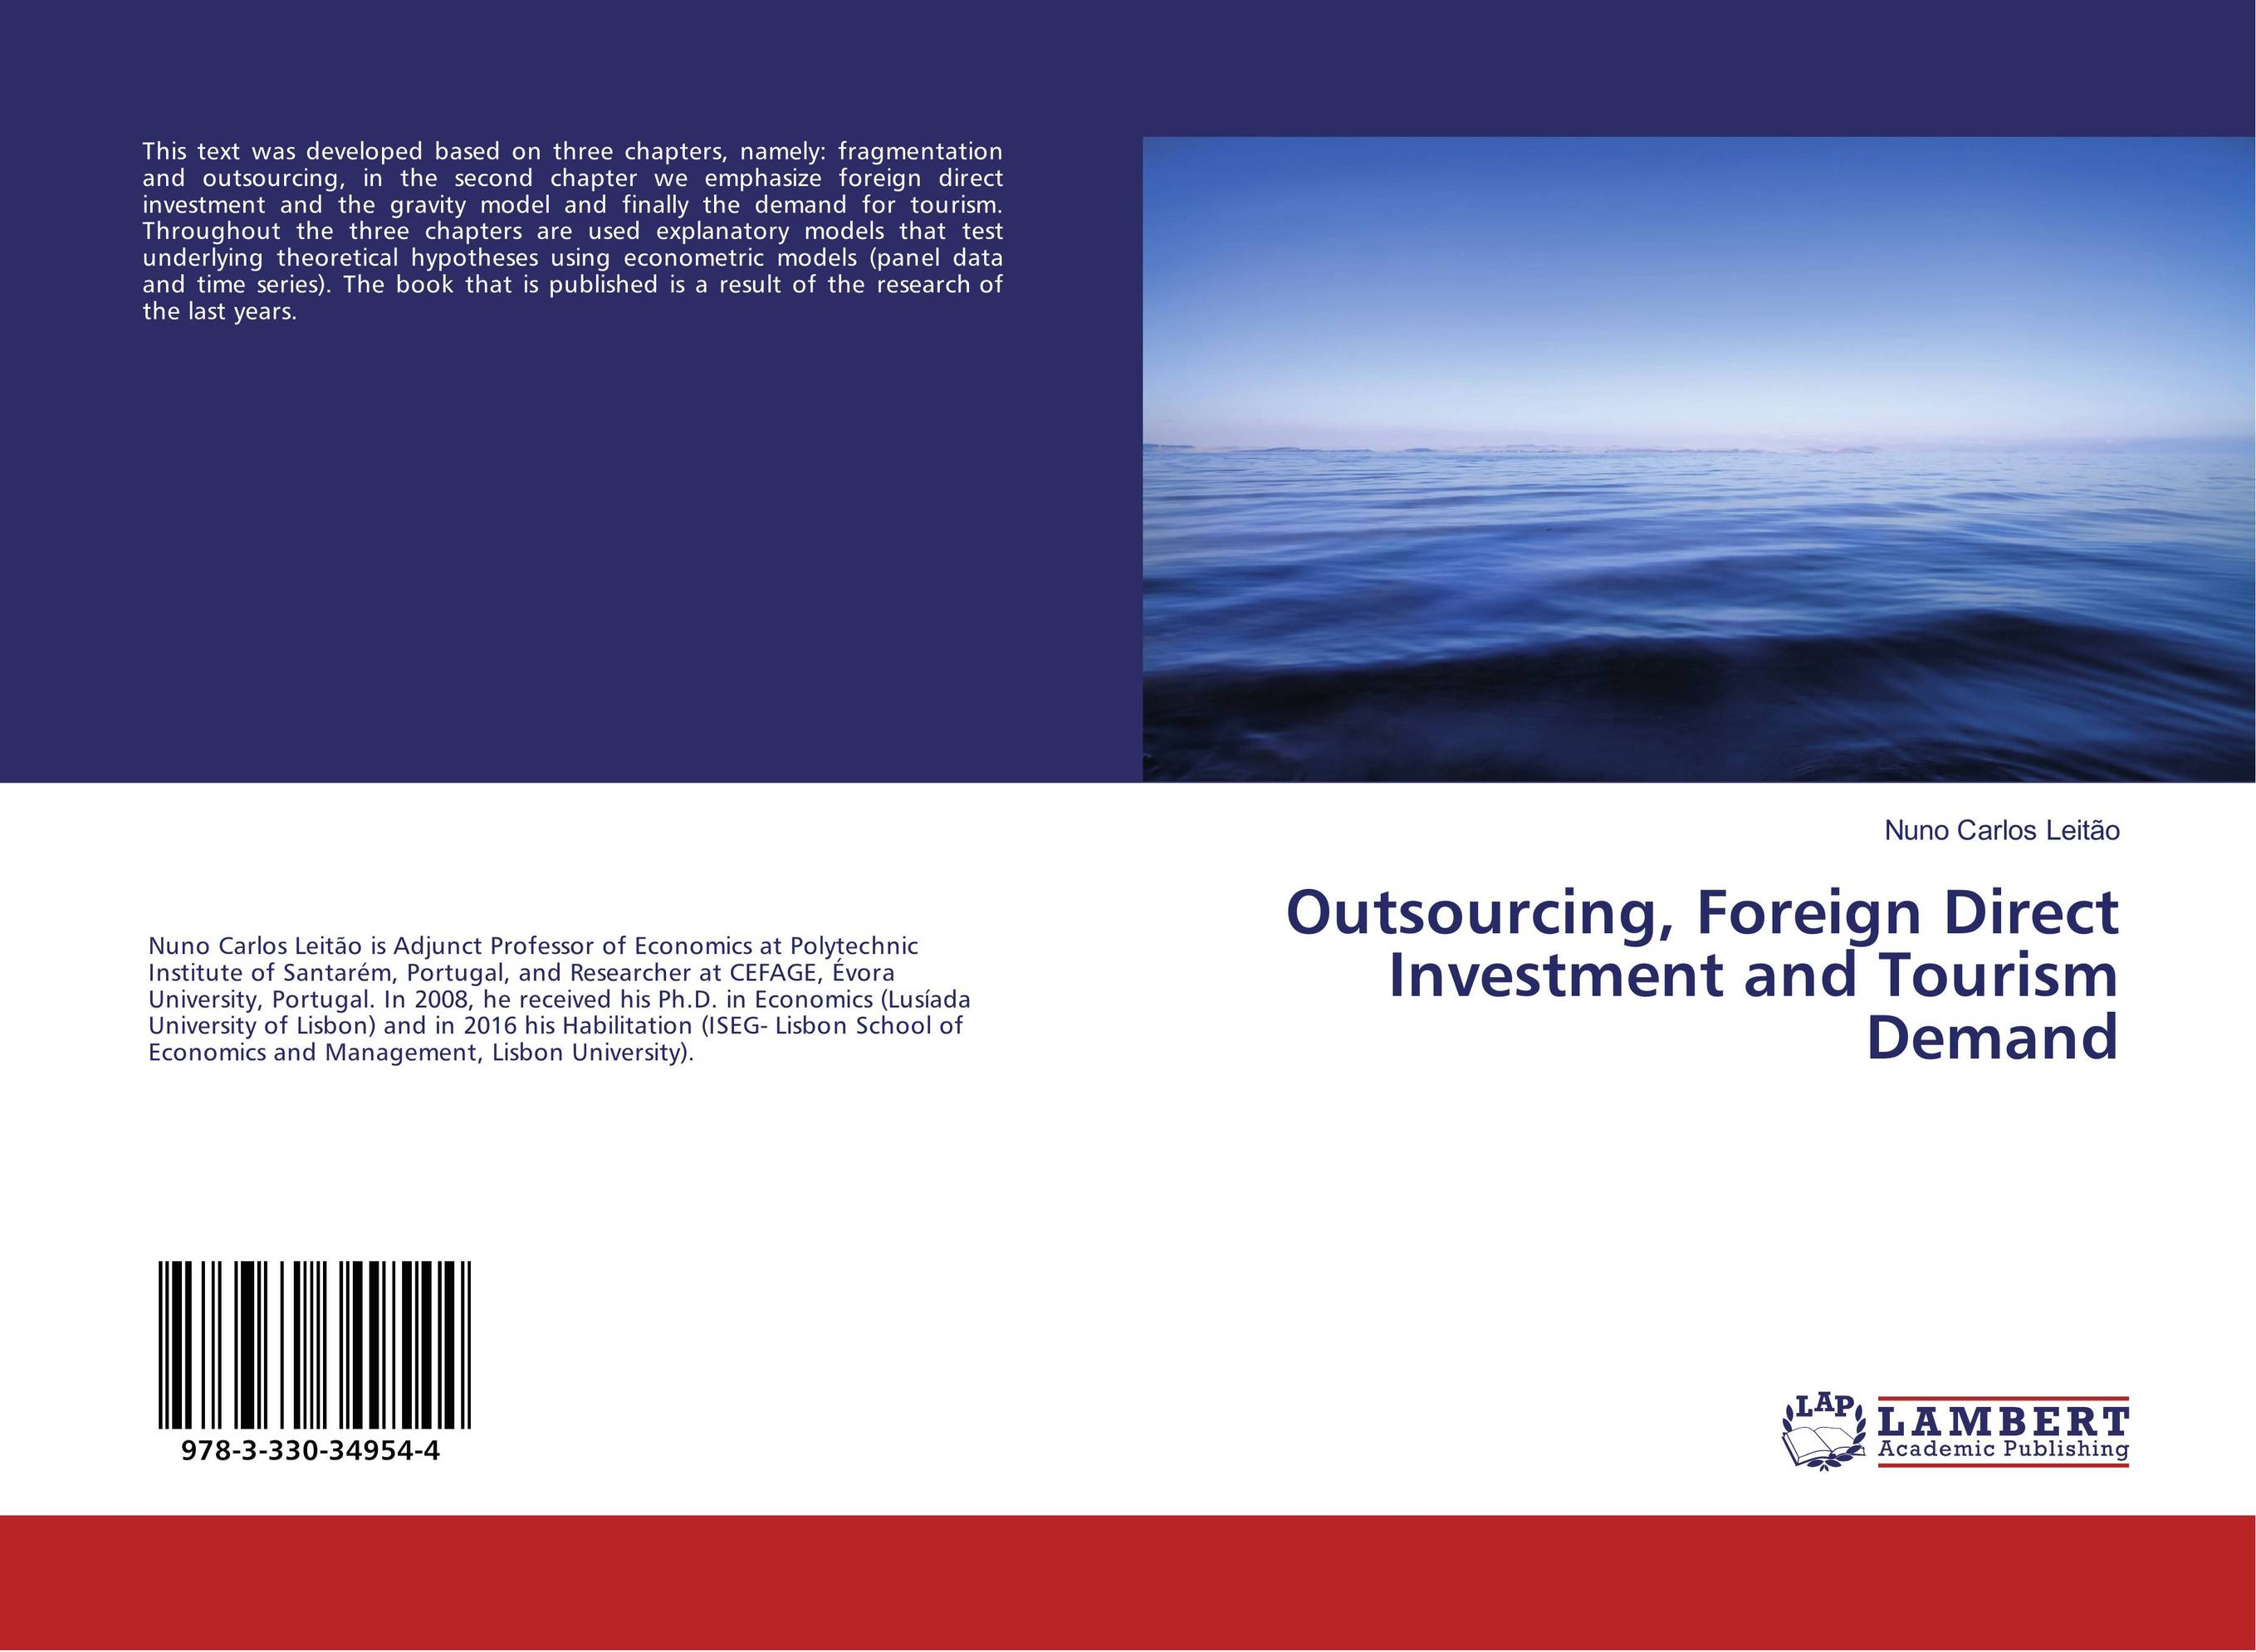 review of literature on fdi in Determinants and effects of foreign direct investment in ghana - review of literature 1 justice g djokoto, dept of agribusiness, central university college, accra, ghana.